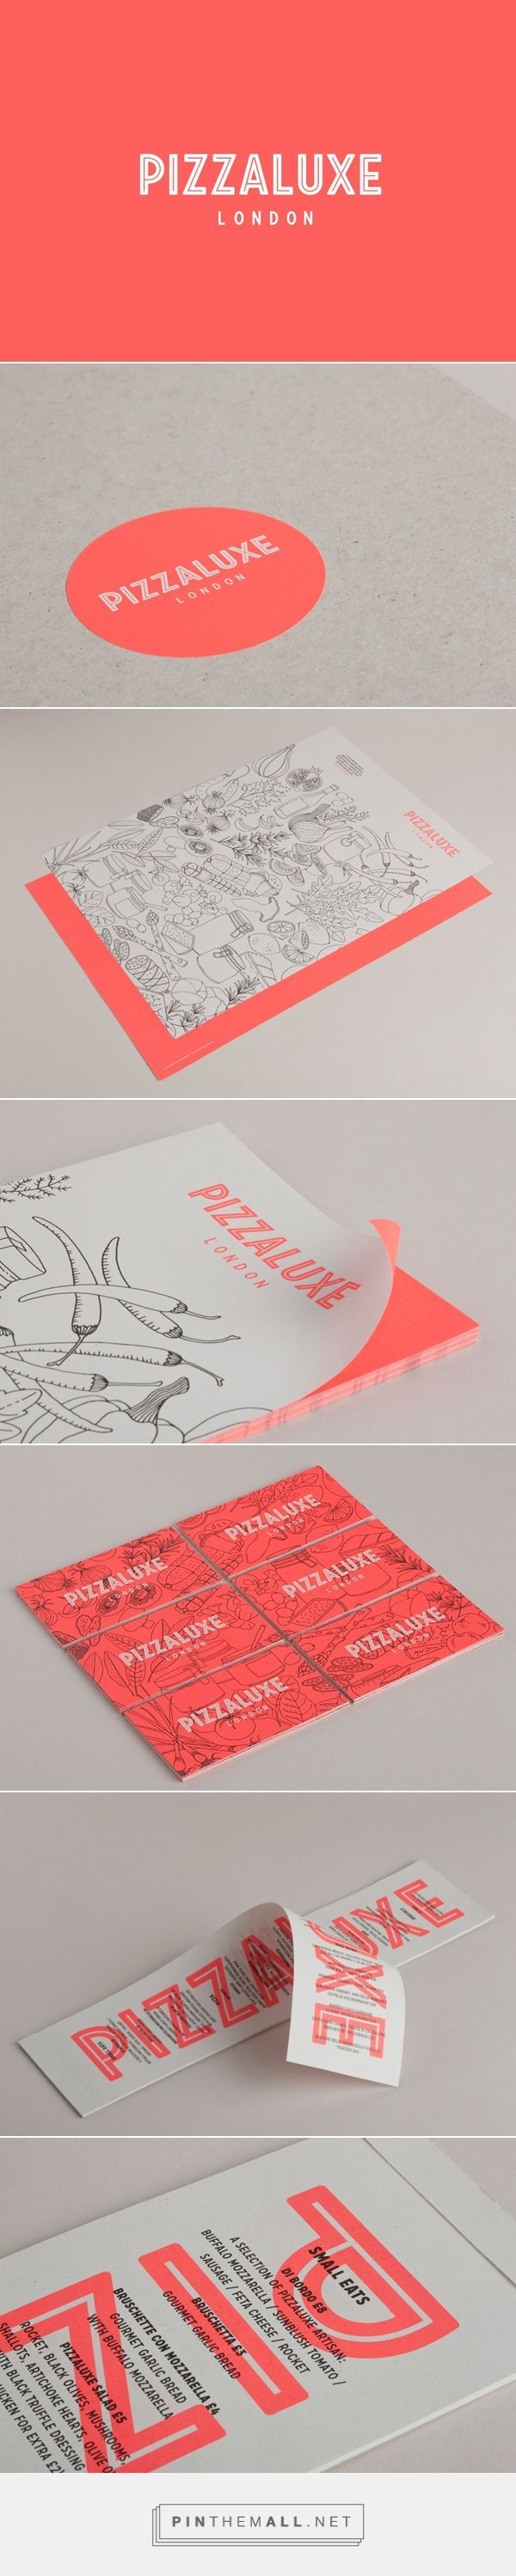 New Brand Identity for PizzaLuxe by Touch